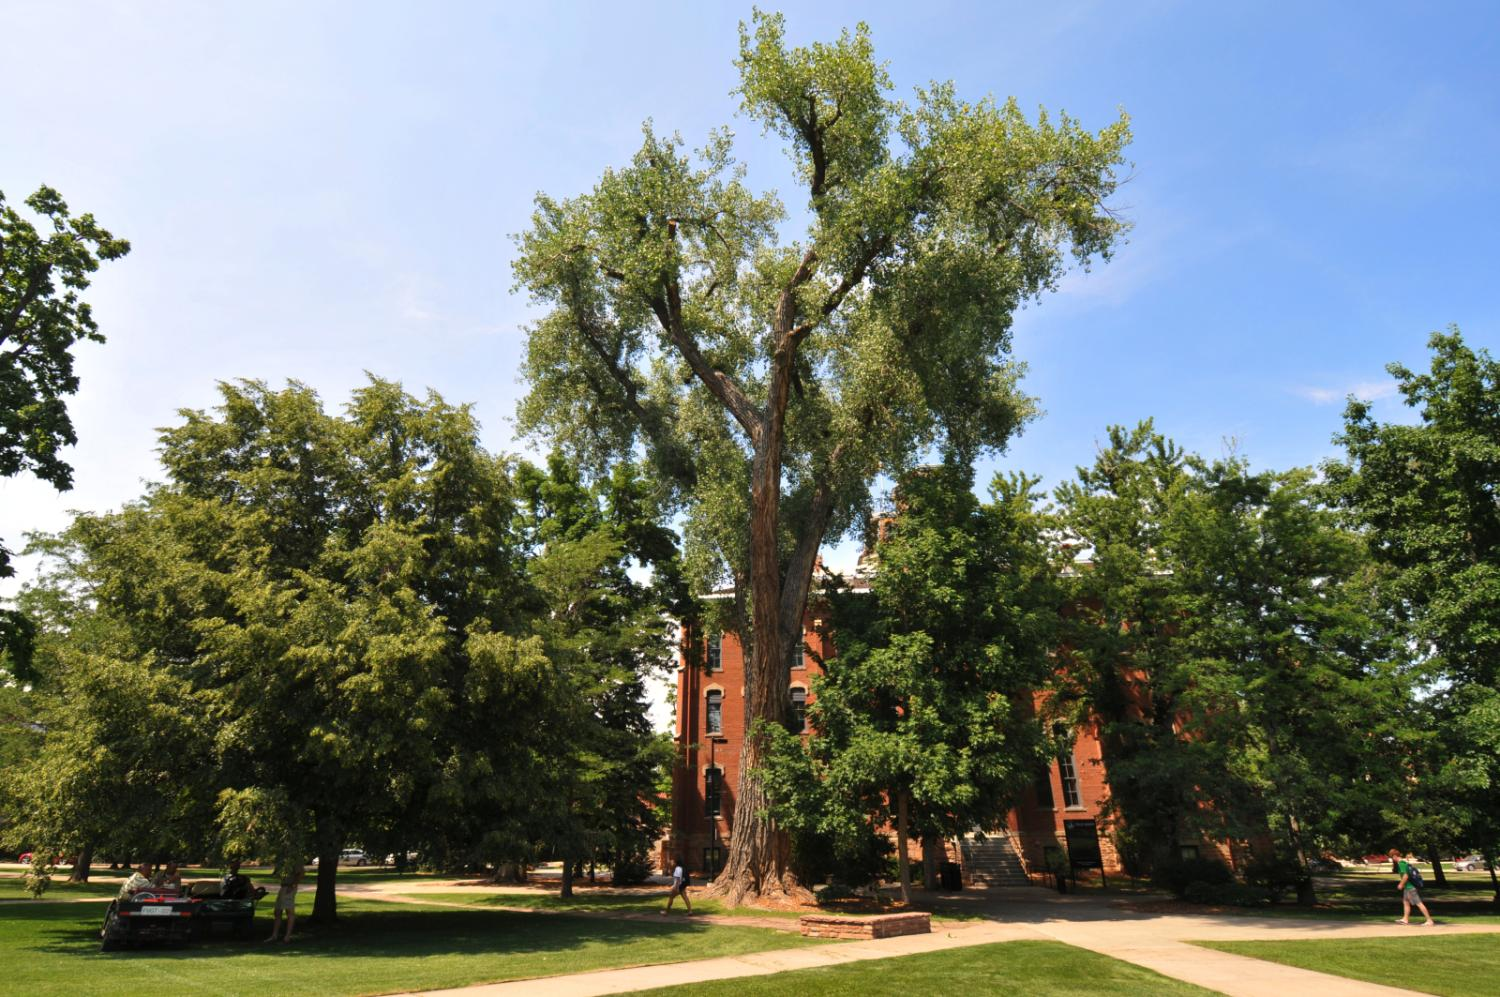 The oldest tree on campus, in front of Old Main Building